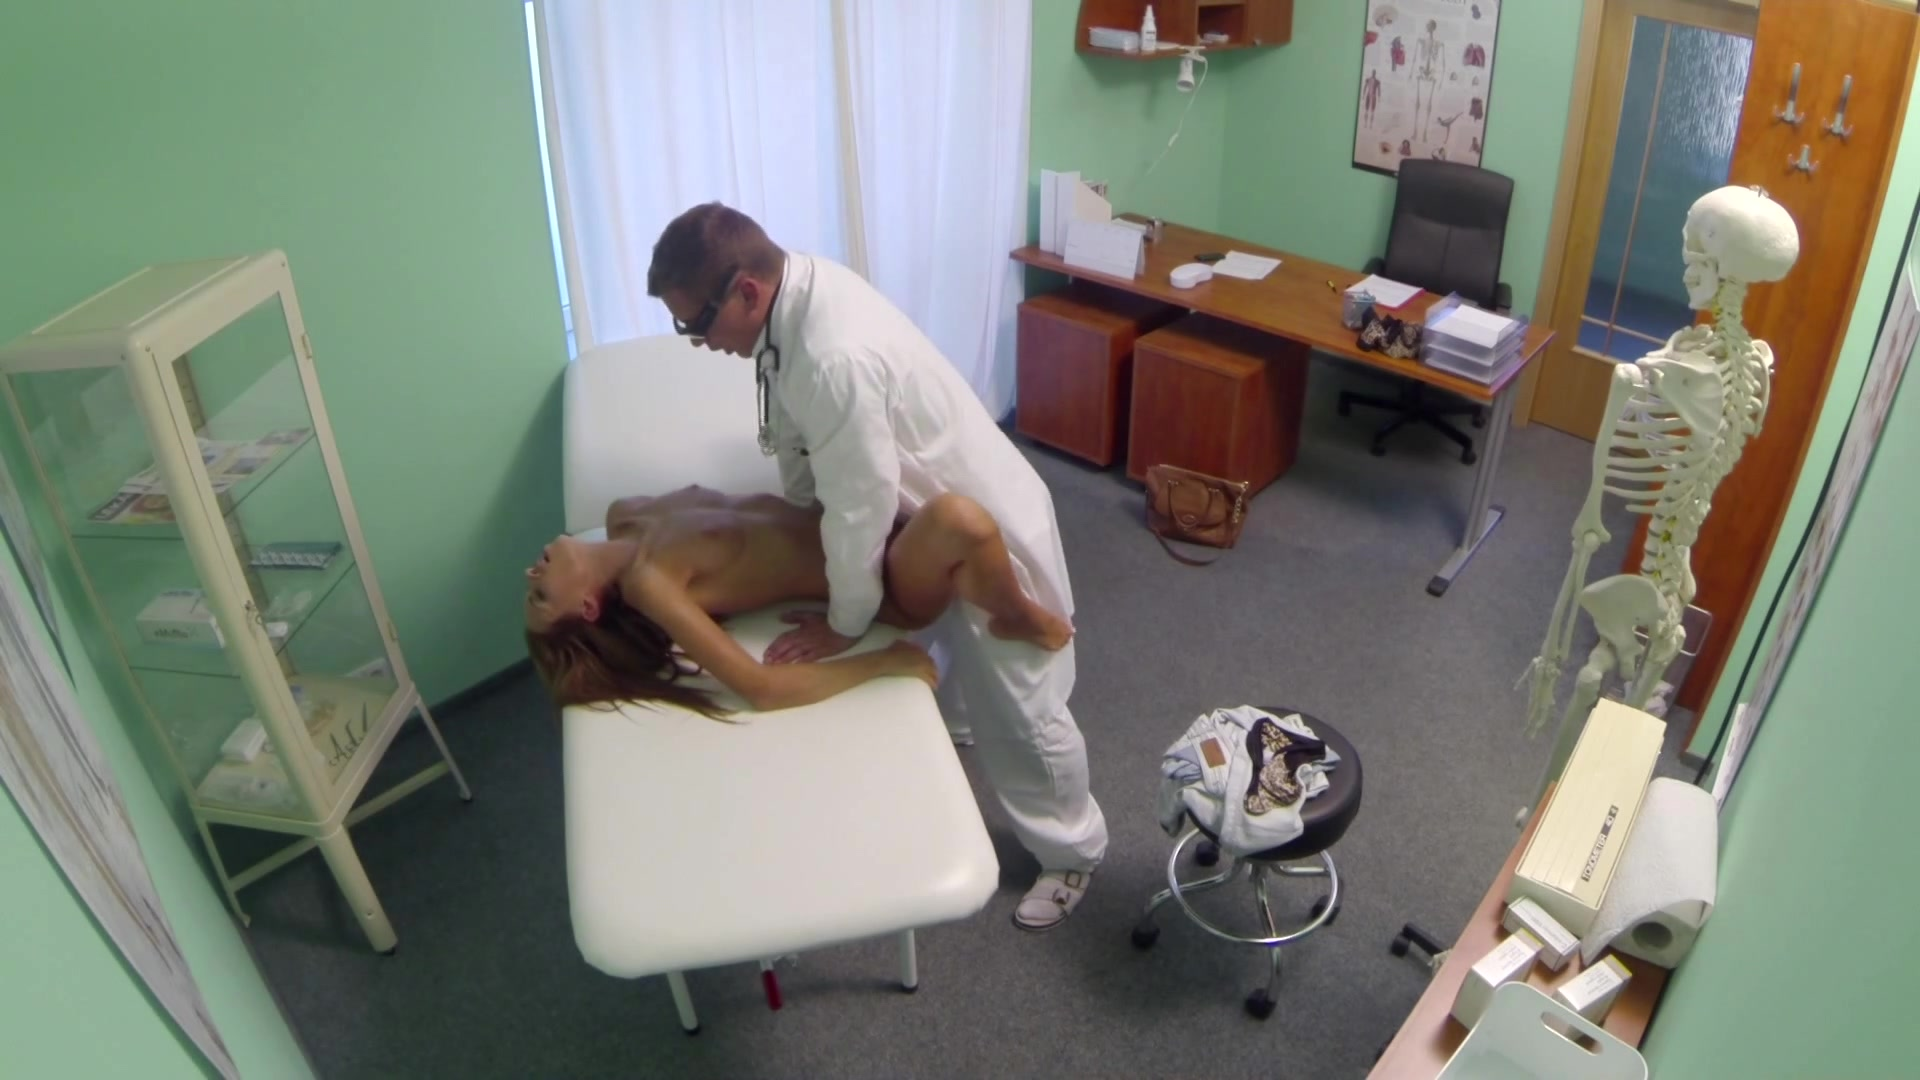 Sexy Patients Has Hot Sex with Her Doctor